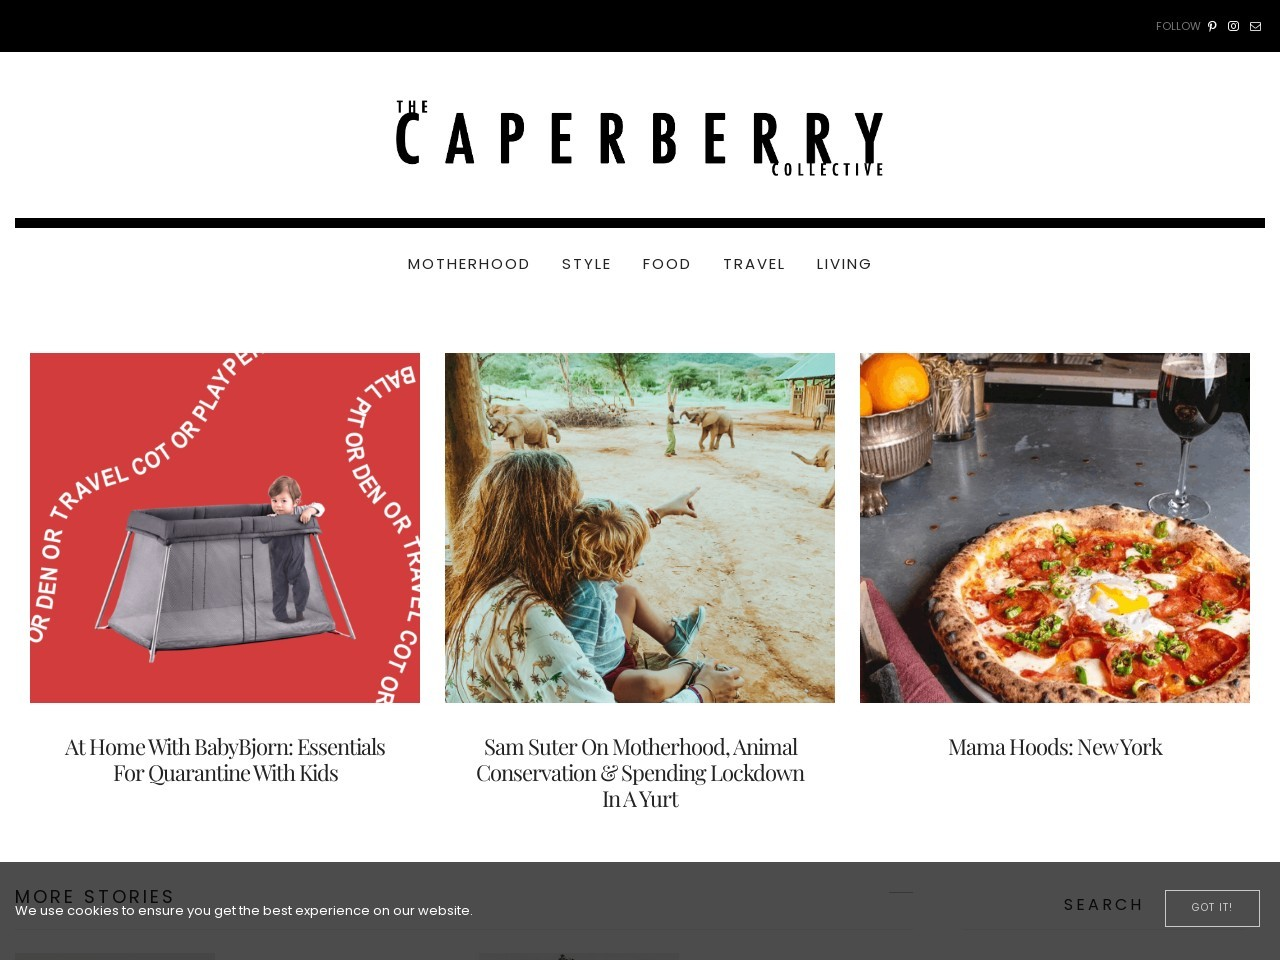 http://www.thecaperberrycollective.com